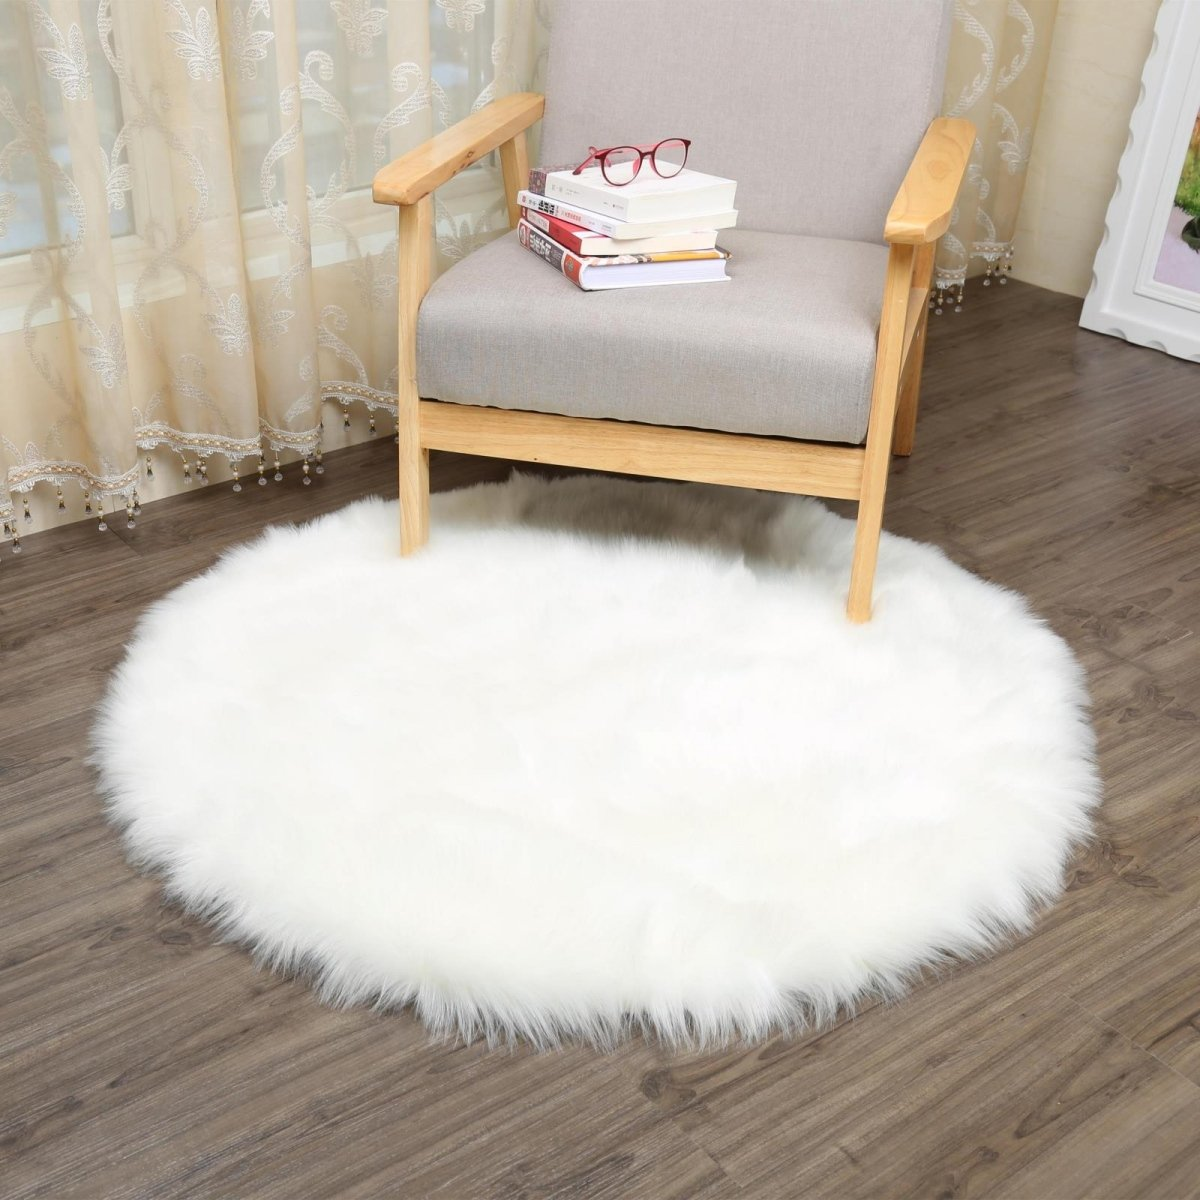 CHITONE Round Faux Fur Sheepskin Rugs, Soft Shaggy Area Rug Home Decorative Bedroom Fluffy Carpet Rug, Diameter 6.6 Feet, White